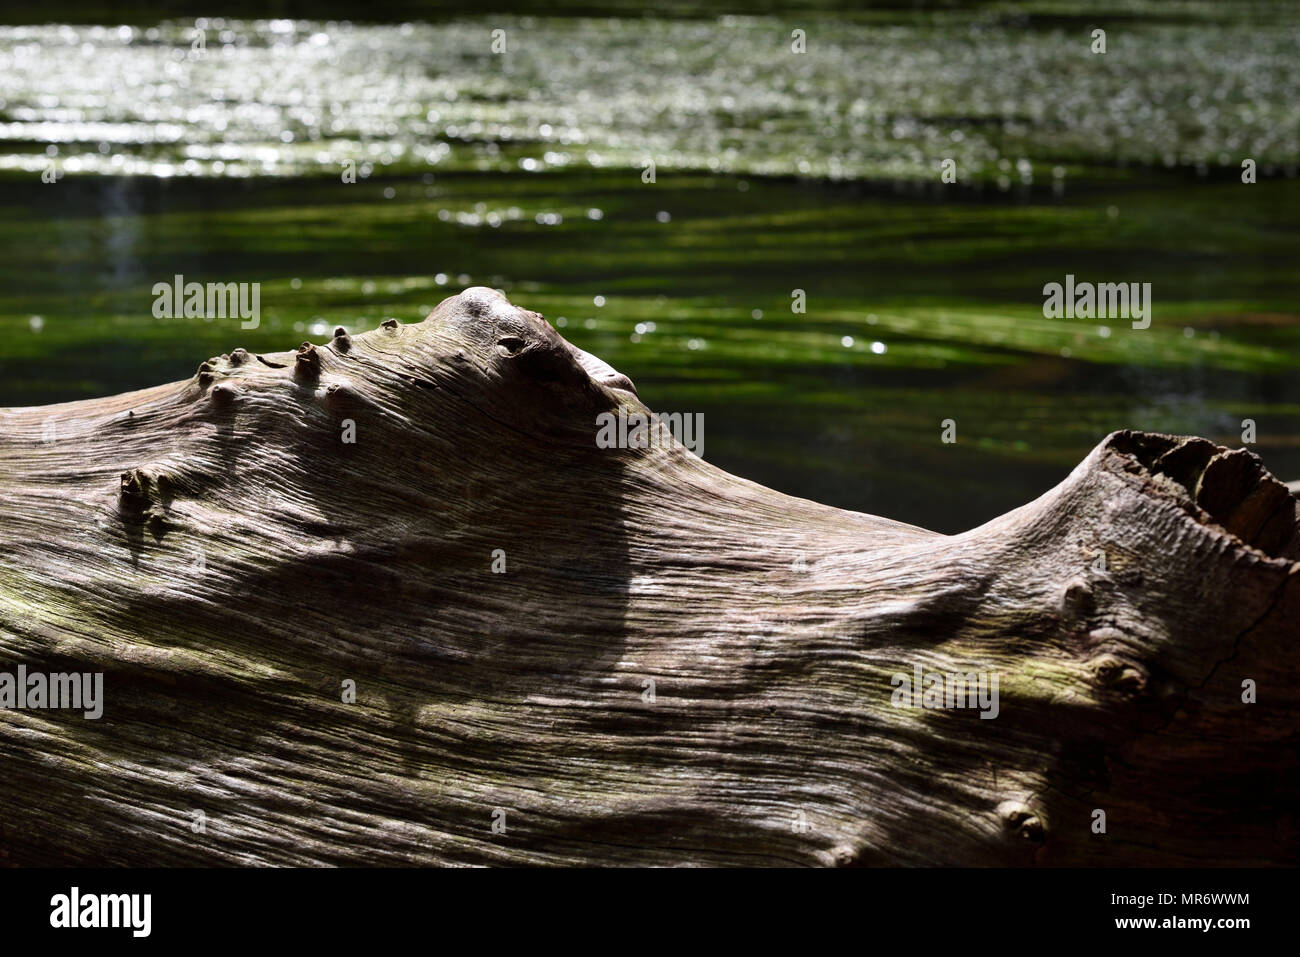 crooked tree trunk and river with green algae, Bavaria, Germany - Stock Image